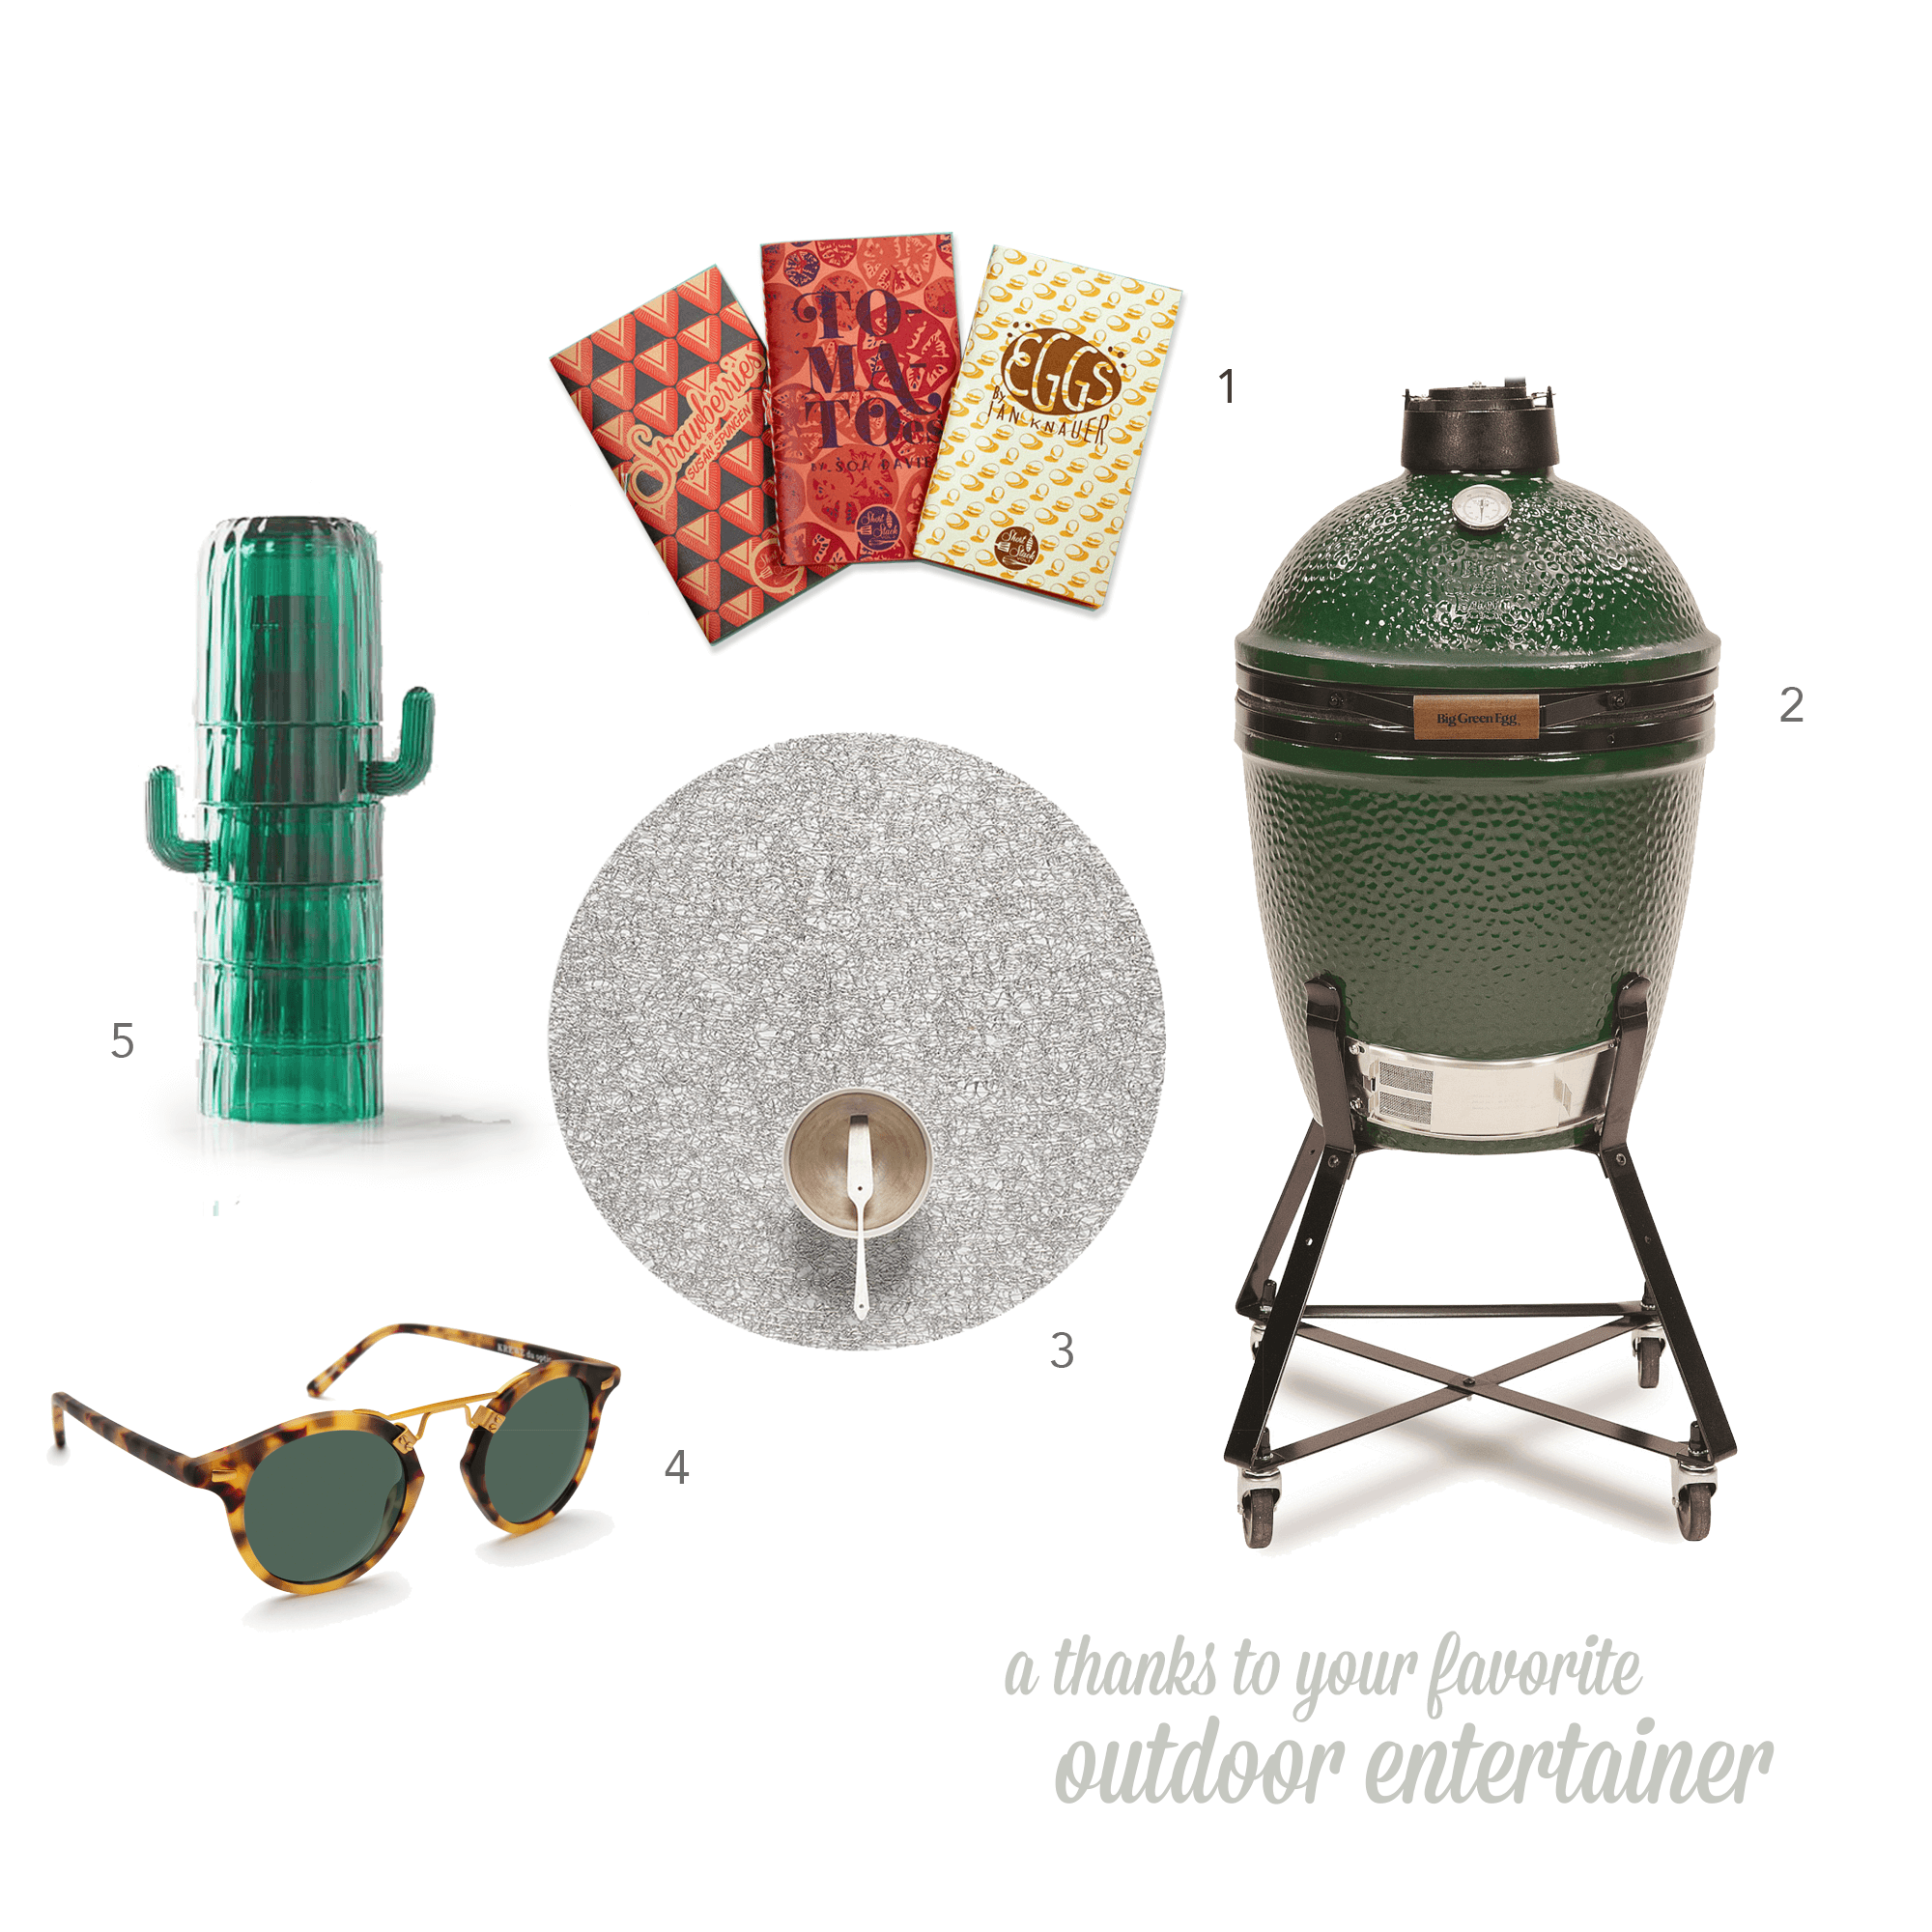 01  Short Stack  recipe bundles  Eggs, Tomatoes & Strawberries  $38  02  Big Green Egg  Small Egg Charcoal Grill $565  03  Chilewich Placemats  Indoor-Outdoor Placemats  in Metallic Lace $33.50  04  Krewe  St. Louis polarized sunglasses $275  05  West Elm  Stacking Cacti Glasses  $55